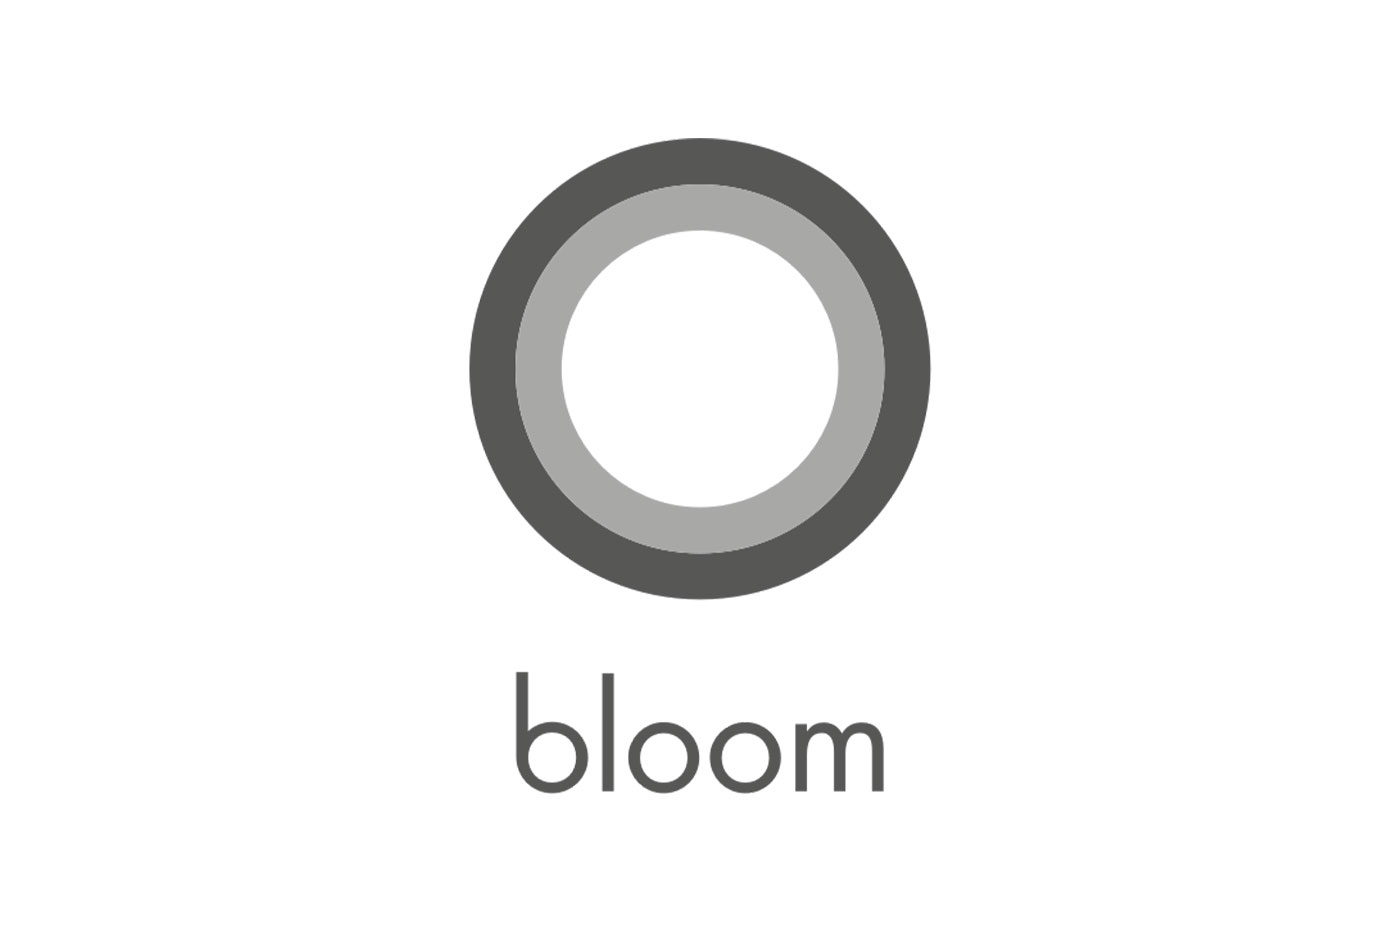 Bloom Diagnostics